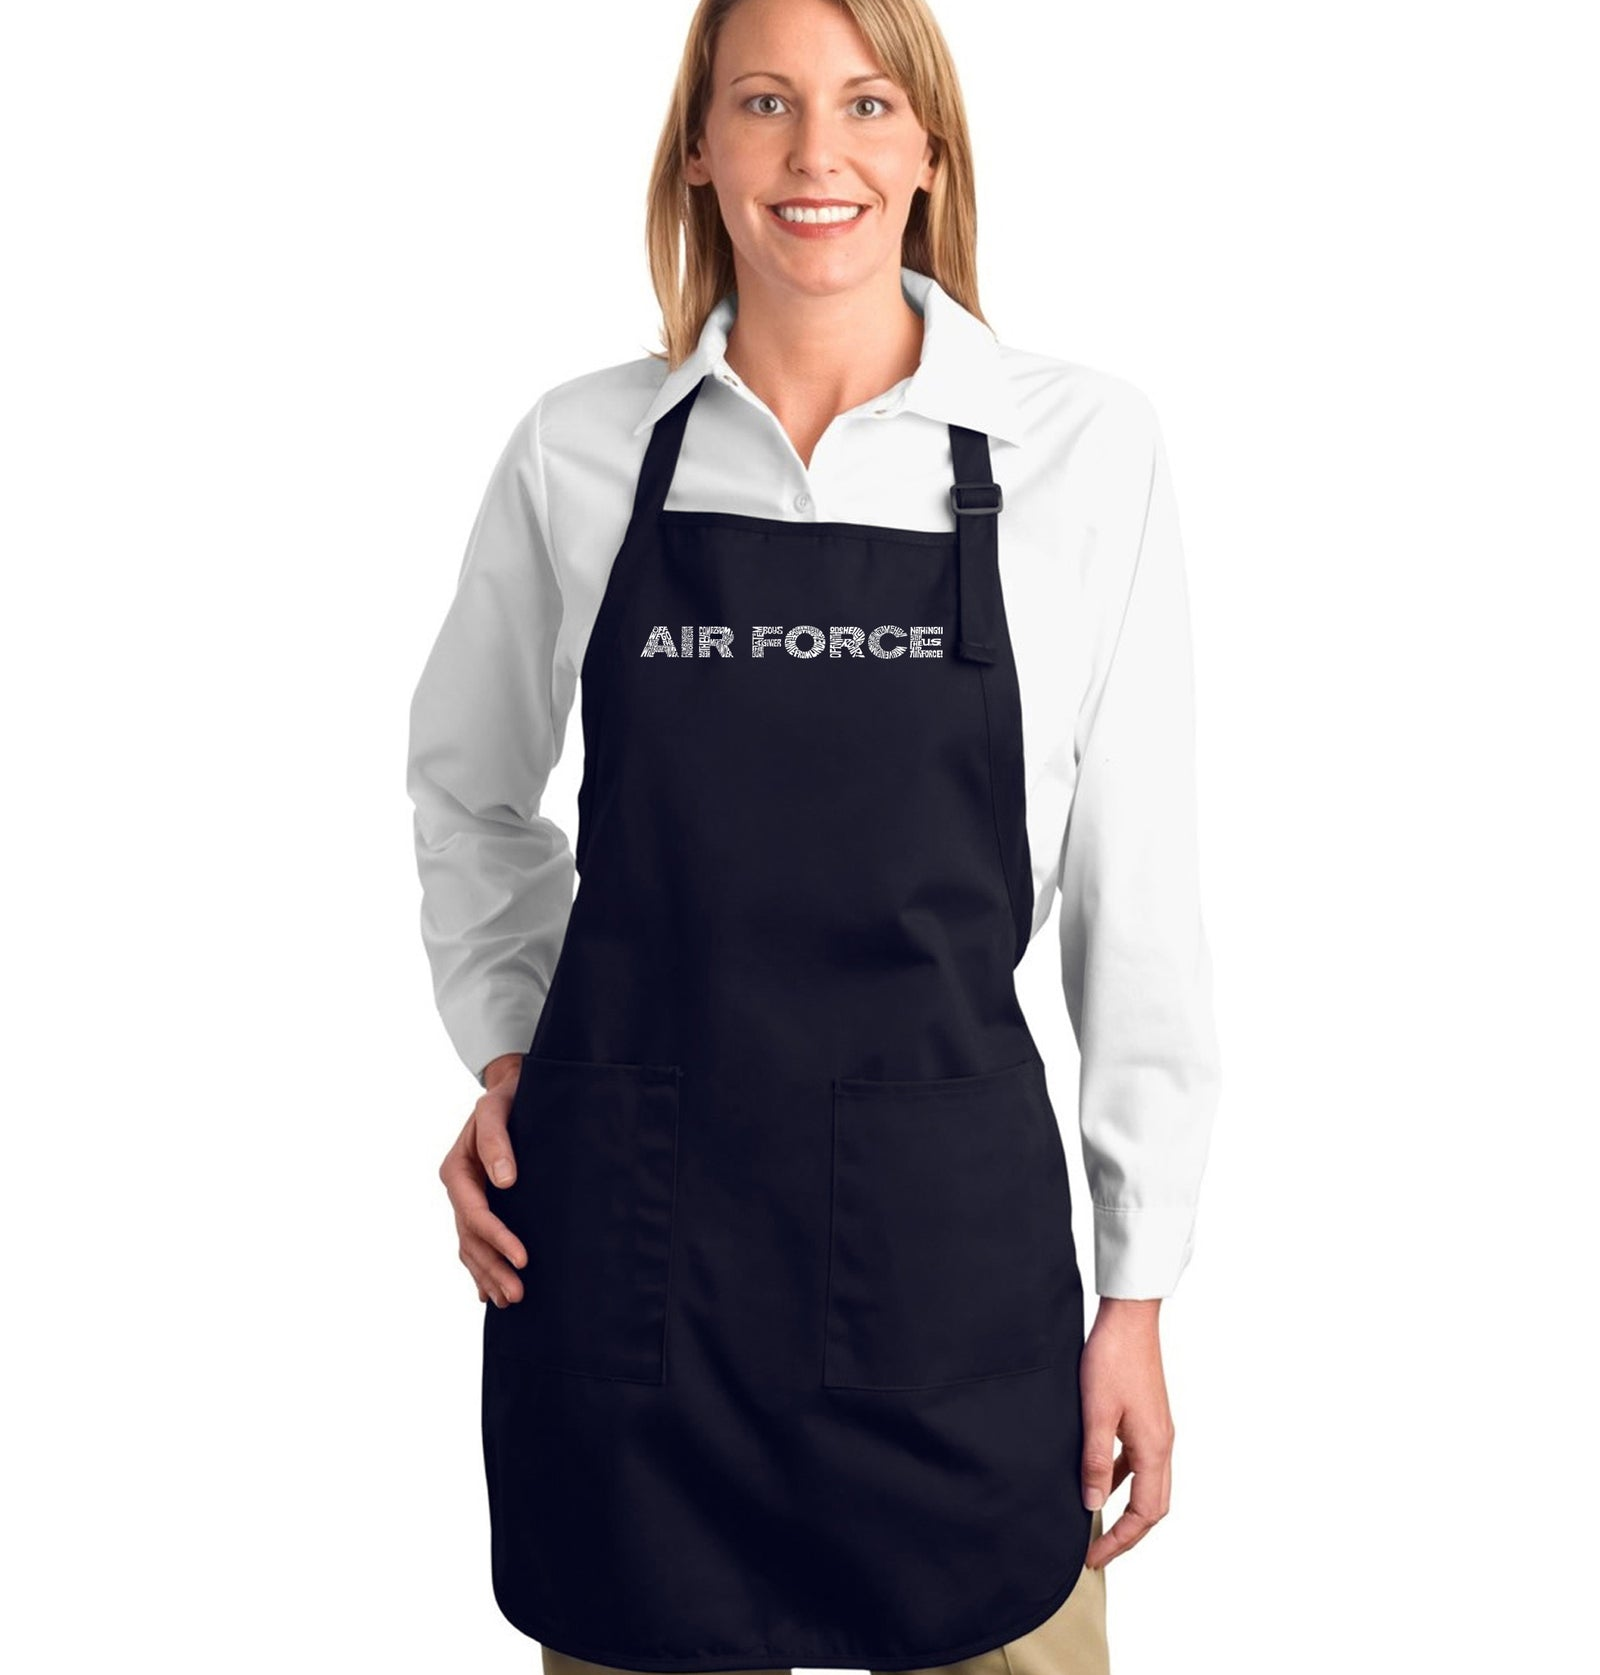 Full Length Apron - Lyrics To The Air Force Song